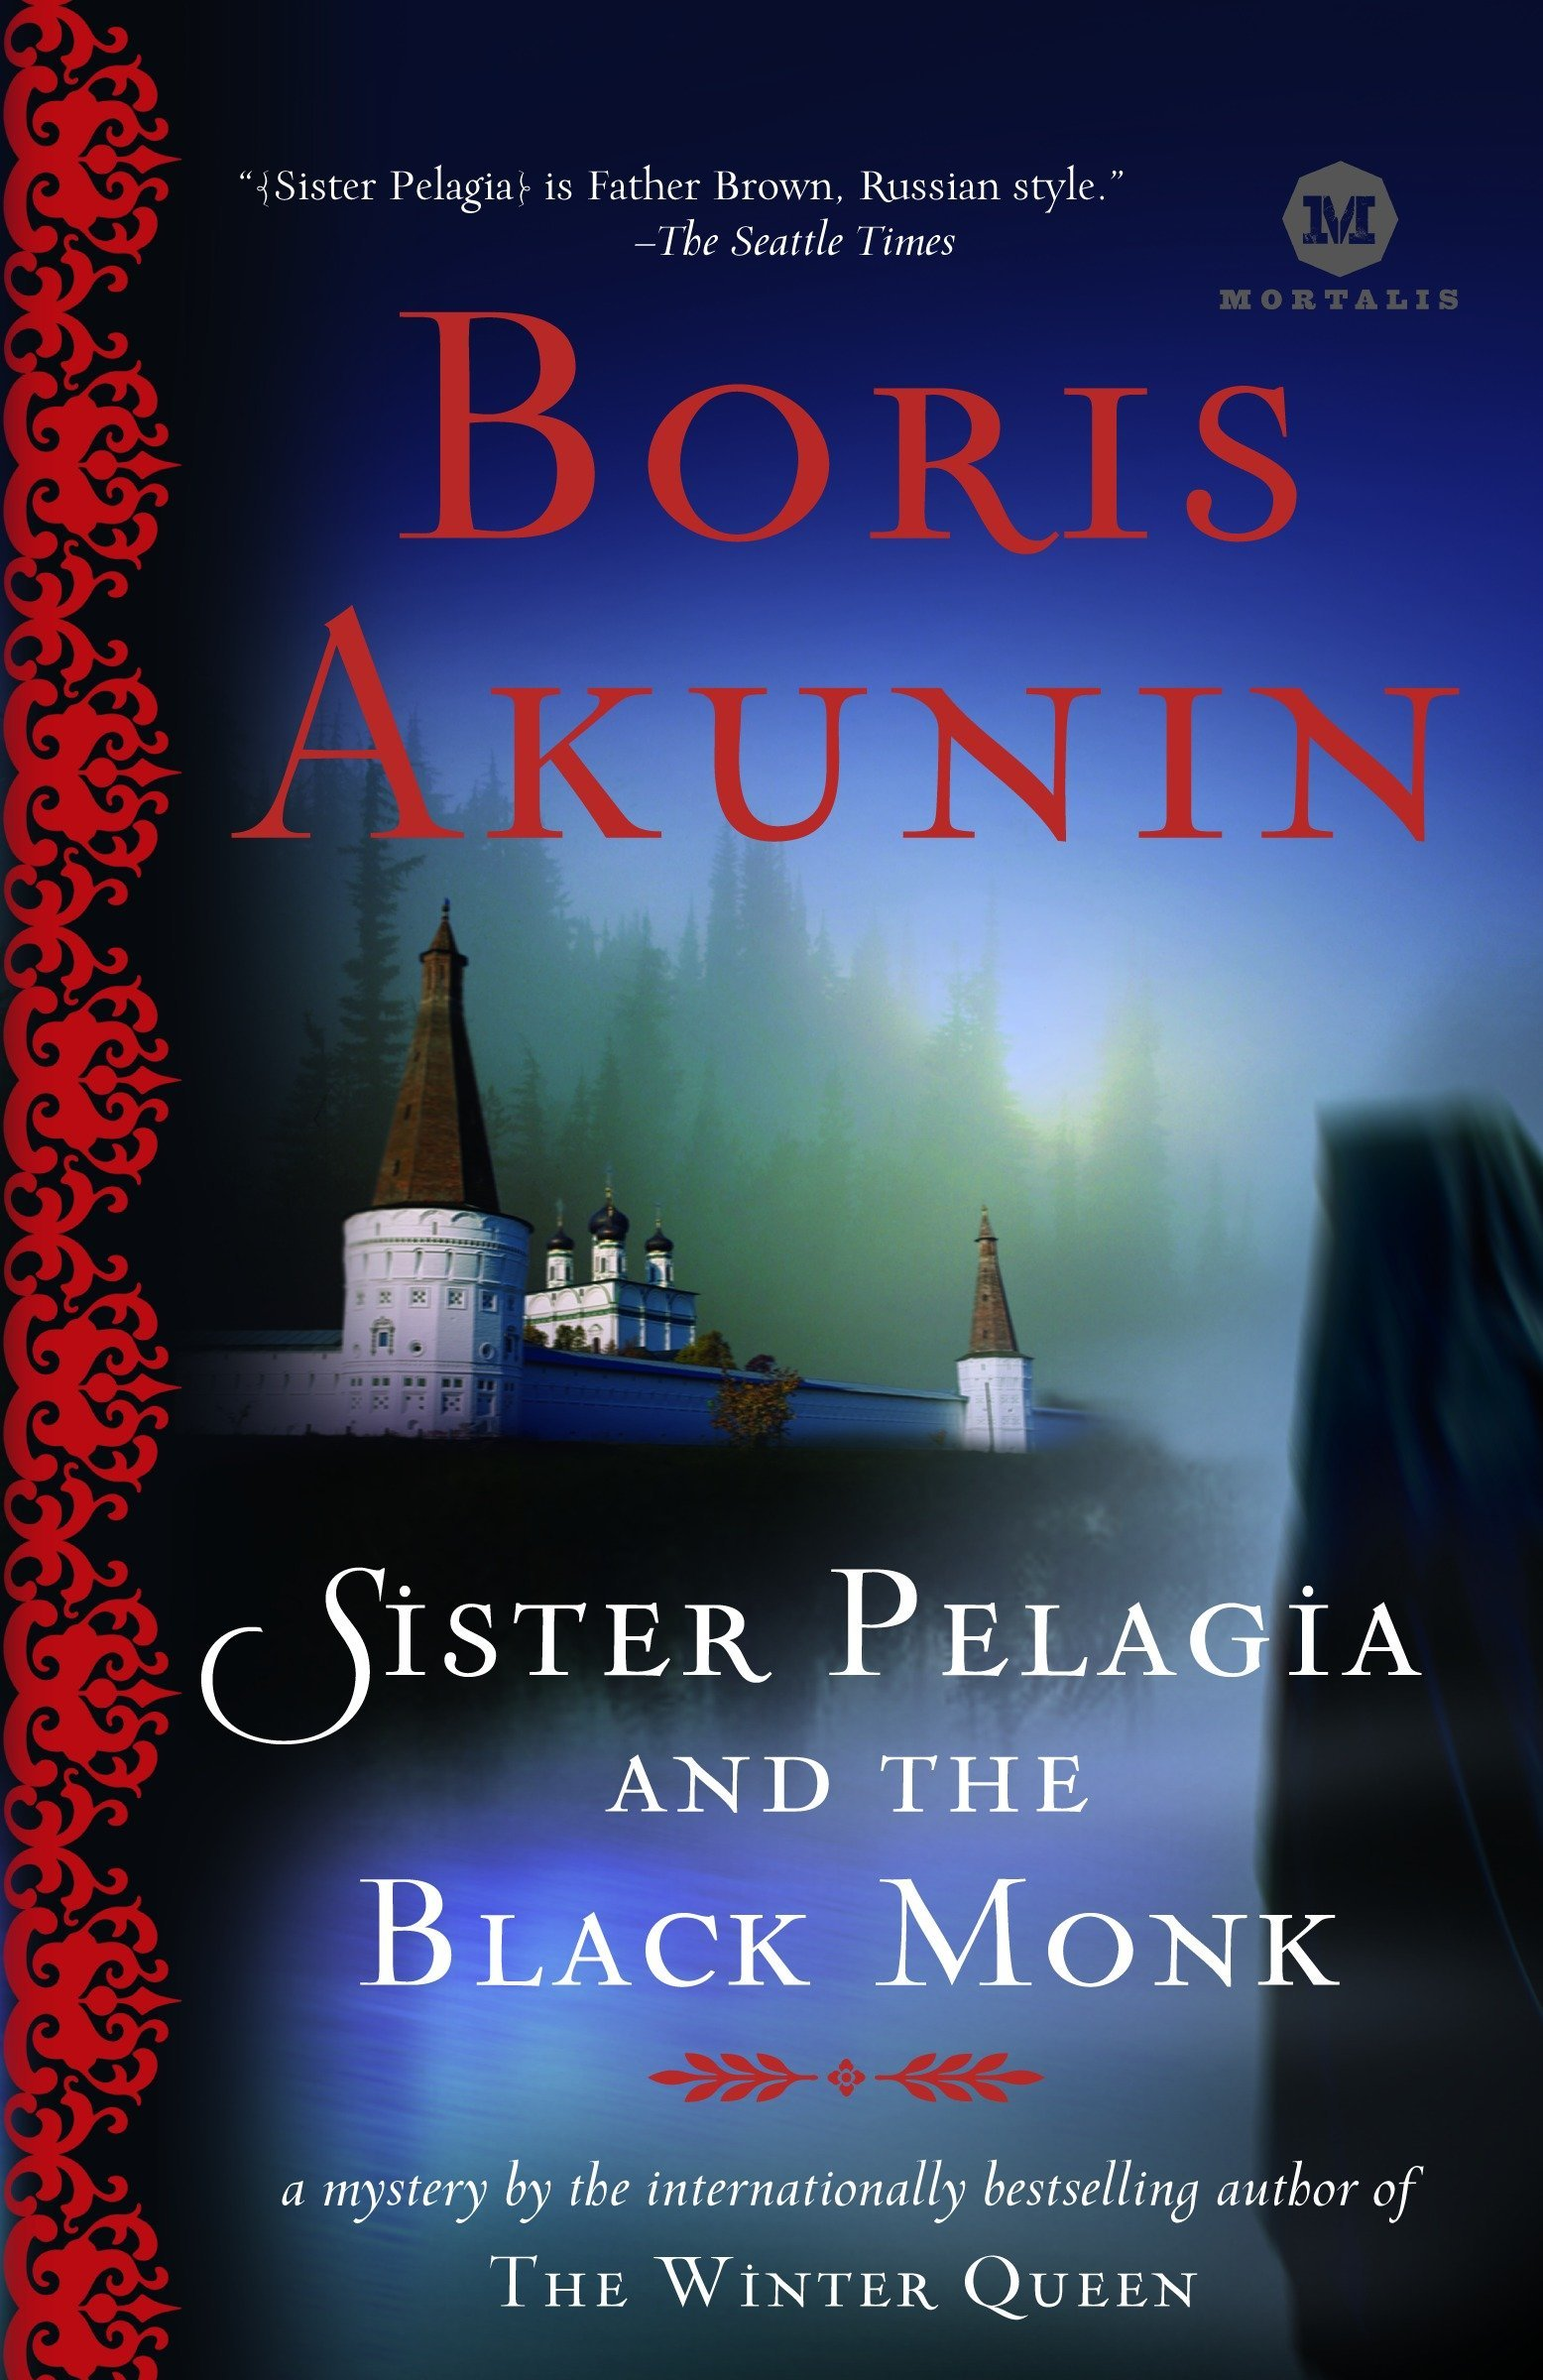 Download Sister Pelagia and the Black Monk: A Novel PDF